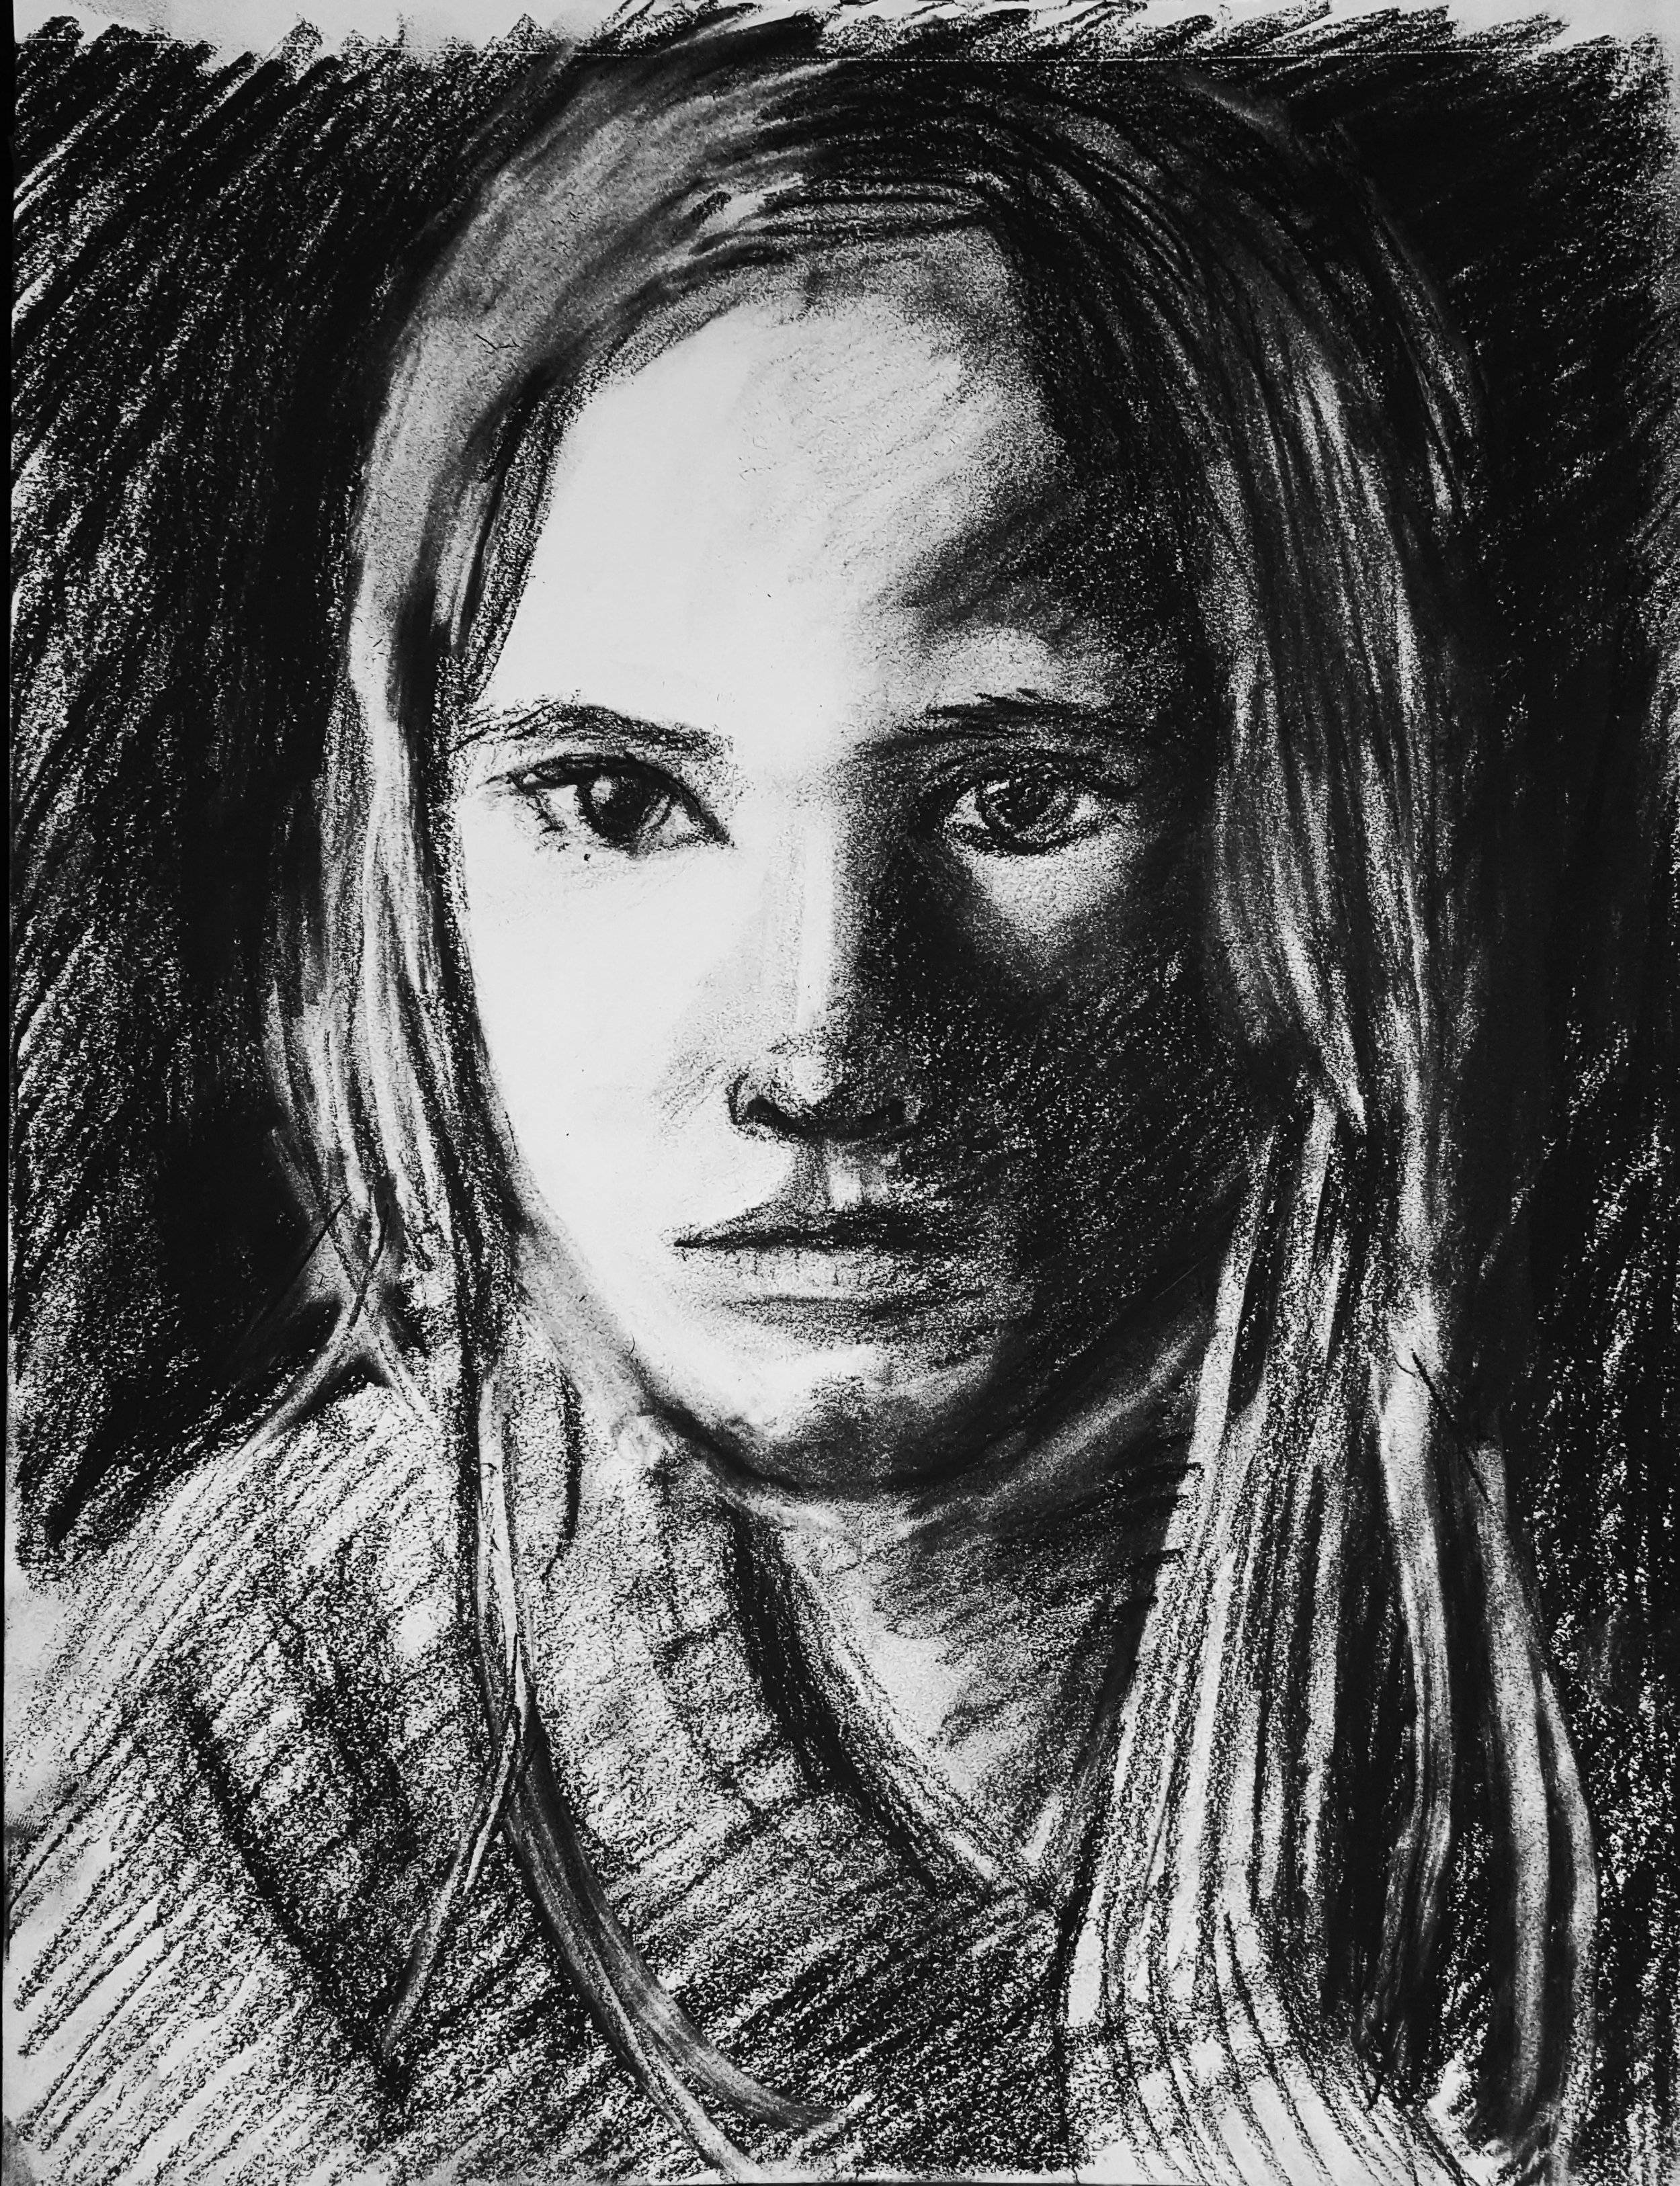 Charcoal_Drawing_1_Edited (1).jpg